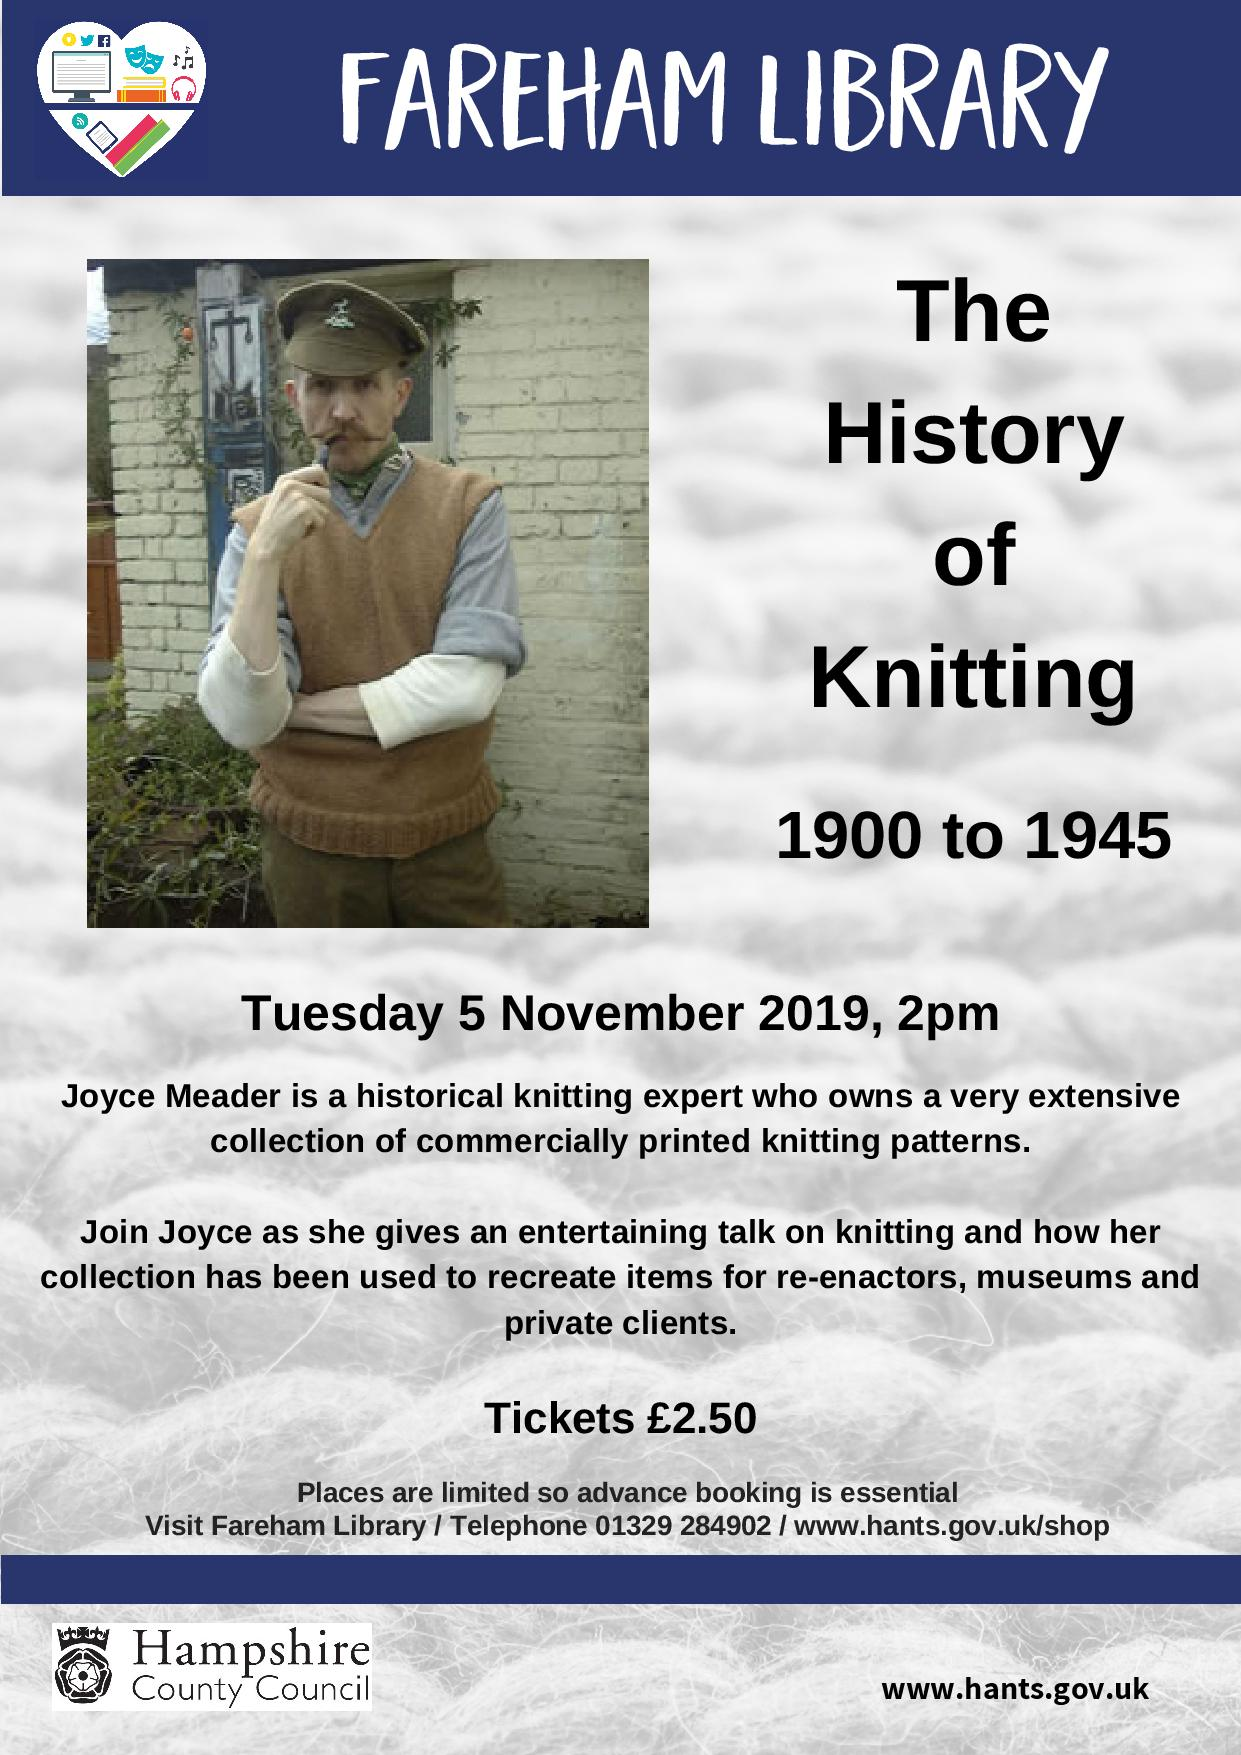 The History of Knitting 1900 to 1945